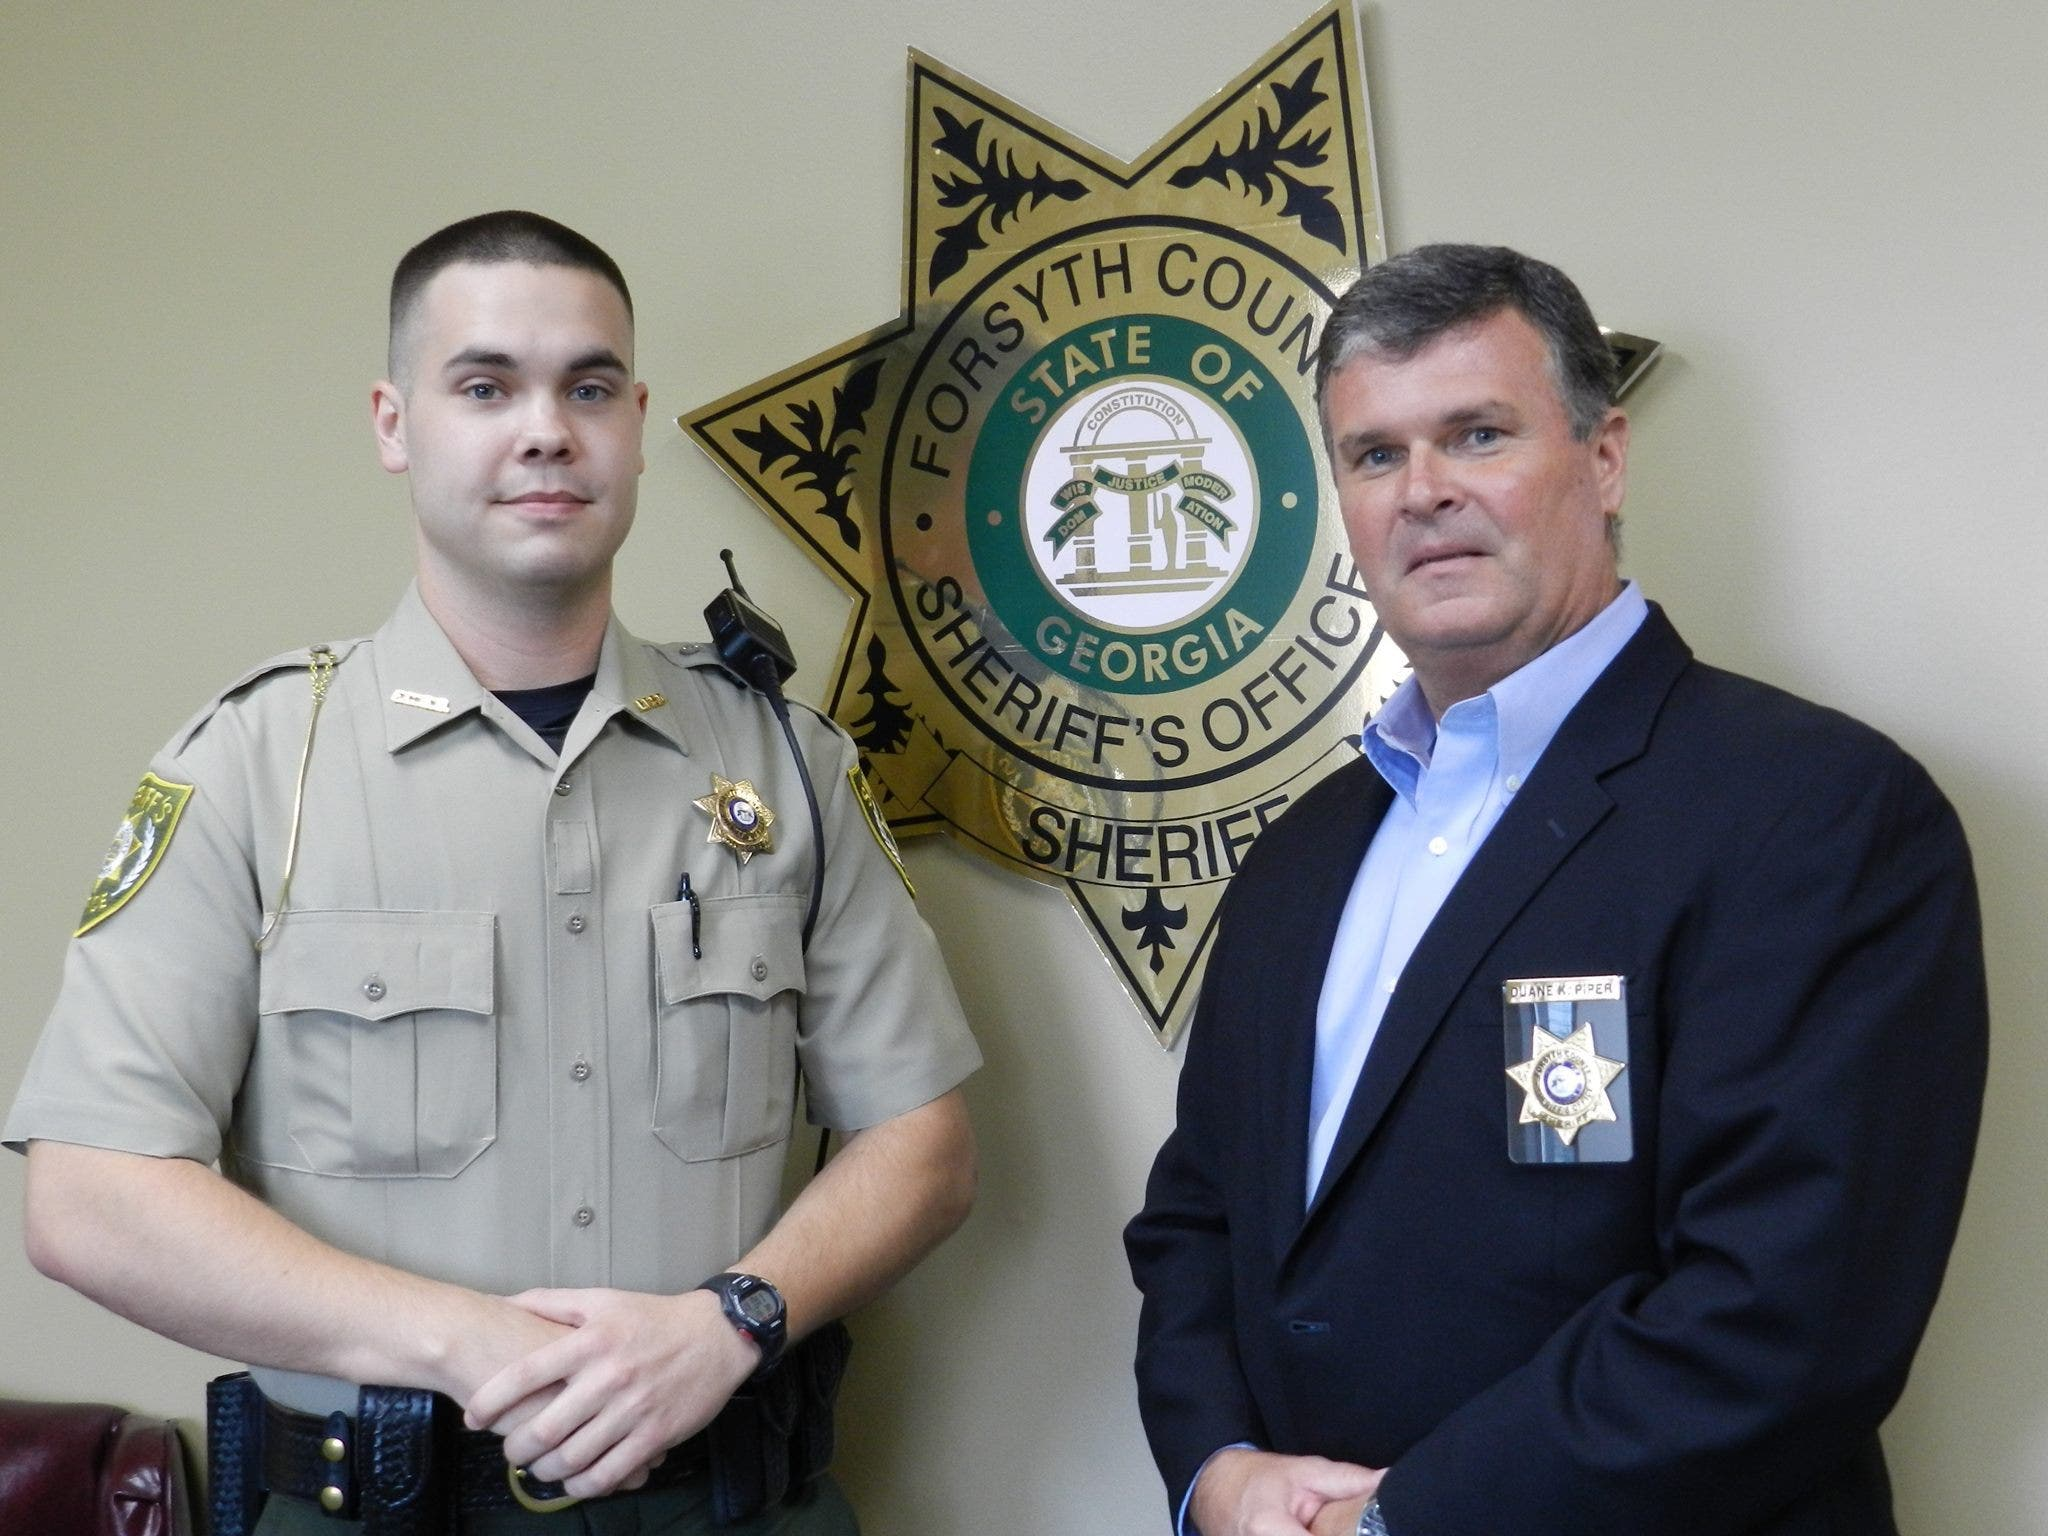 Forsyth County Sheriff's Office Welcomes New Deputy   Cumming, GA Patch